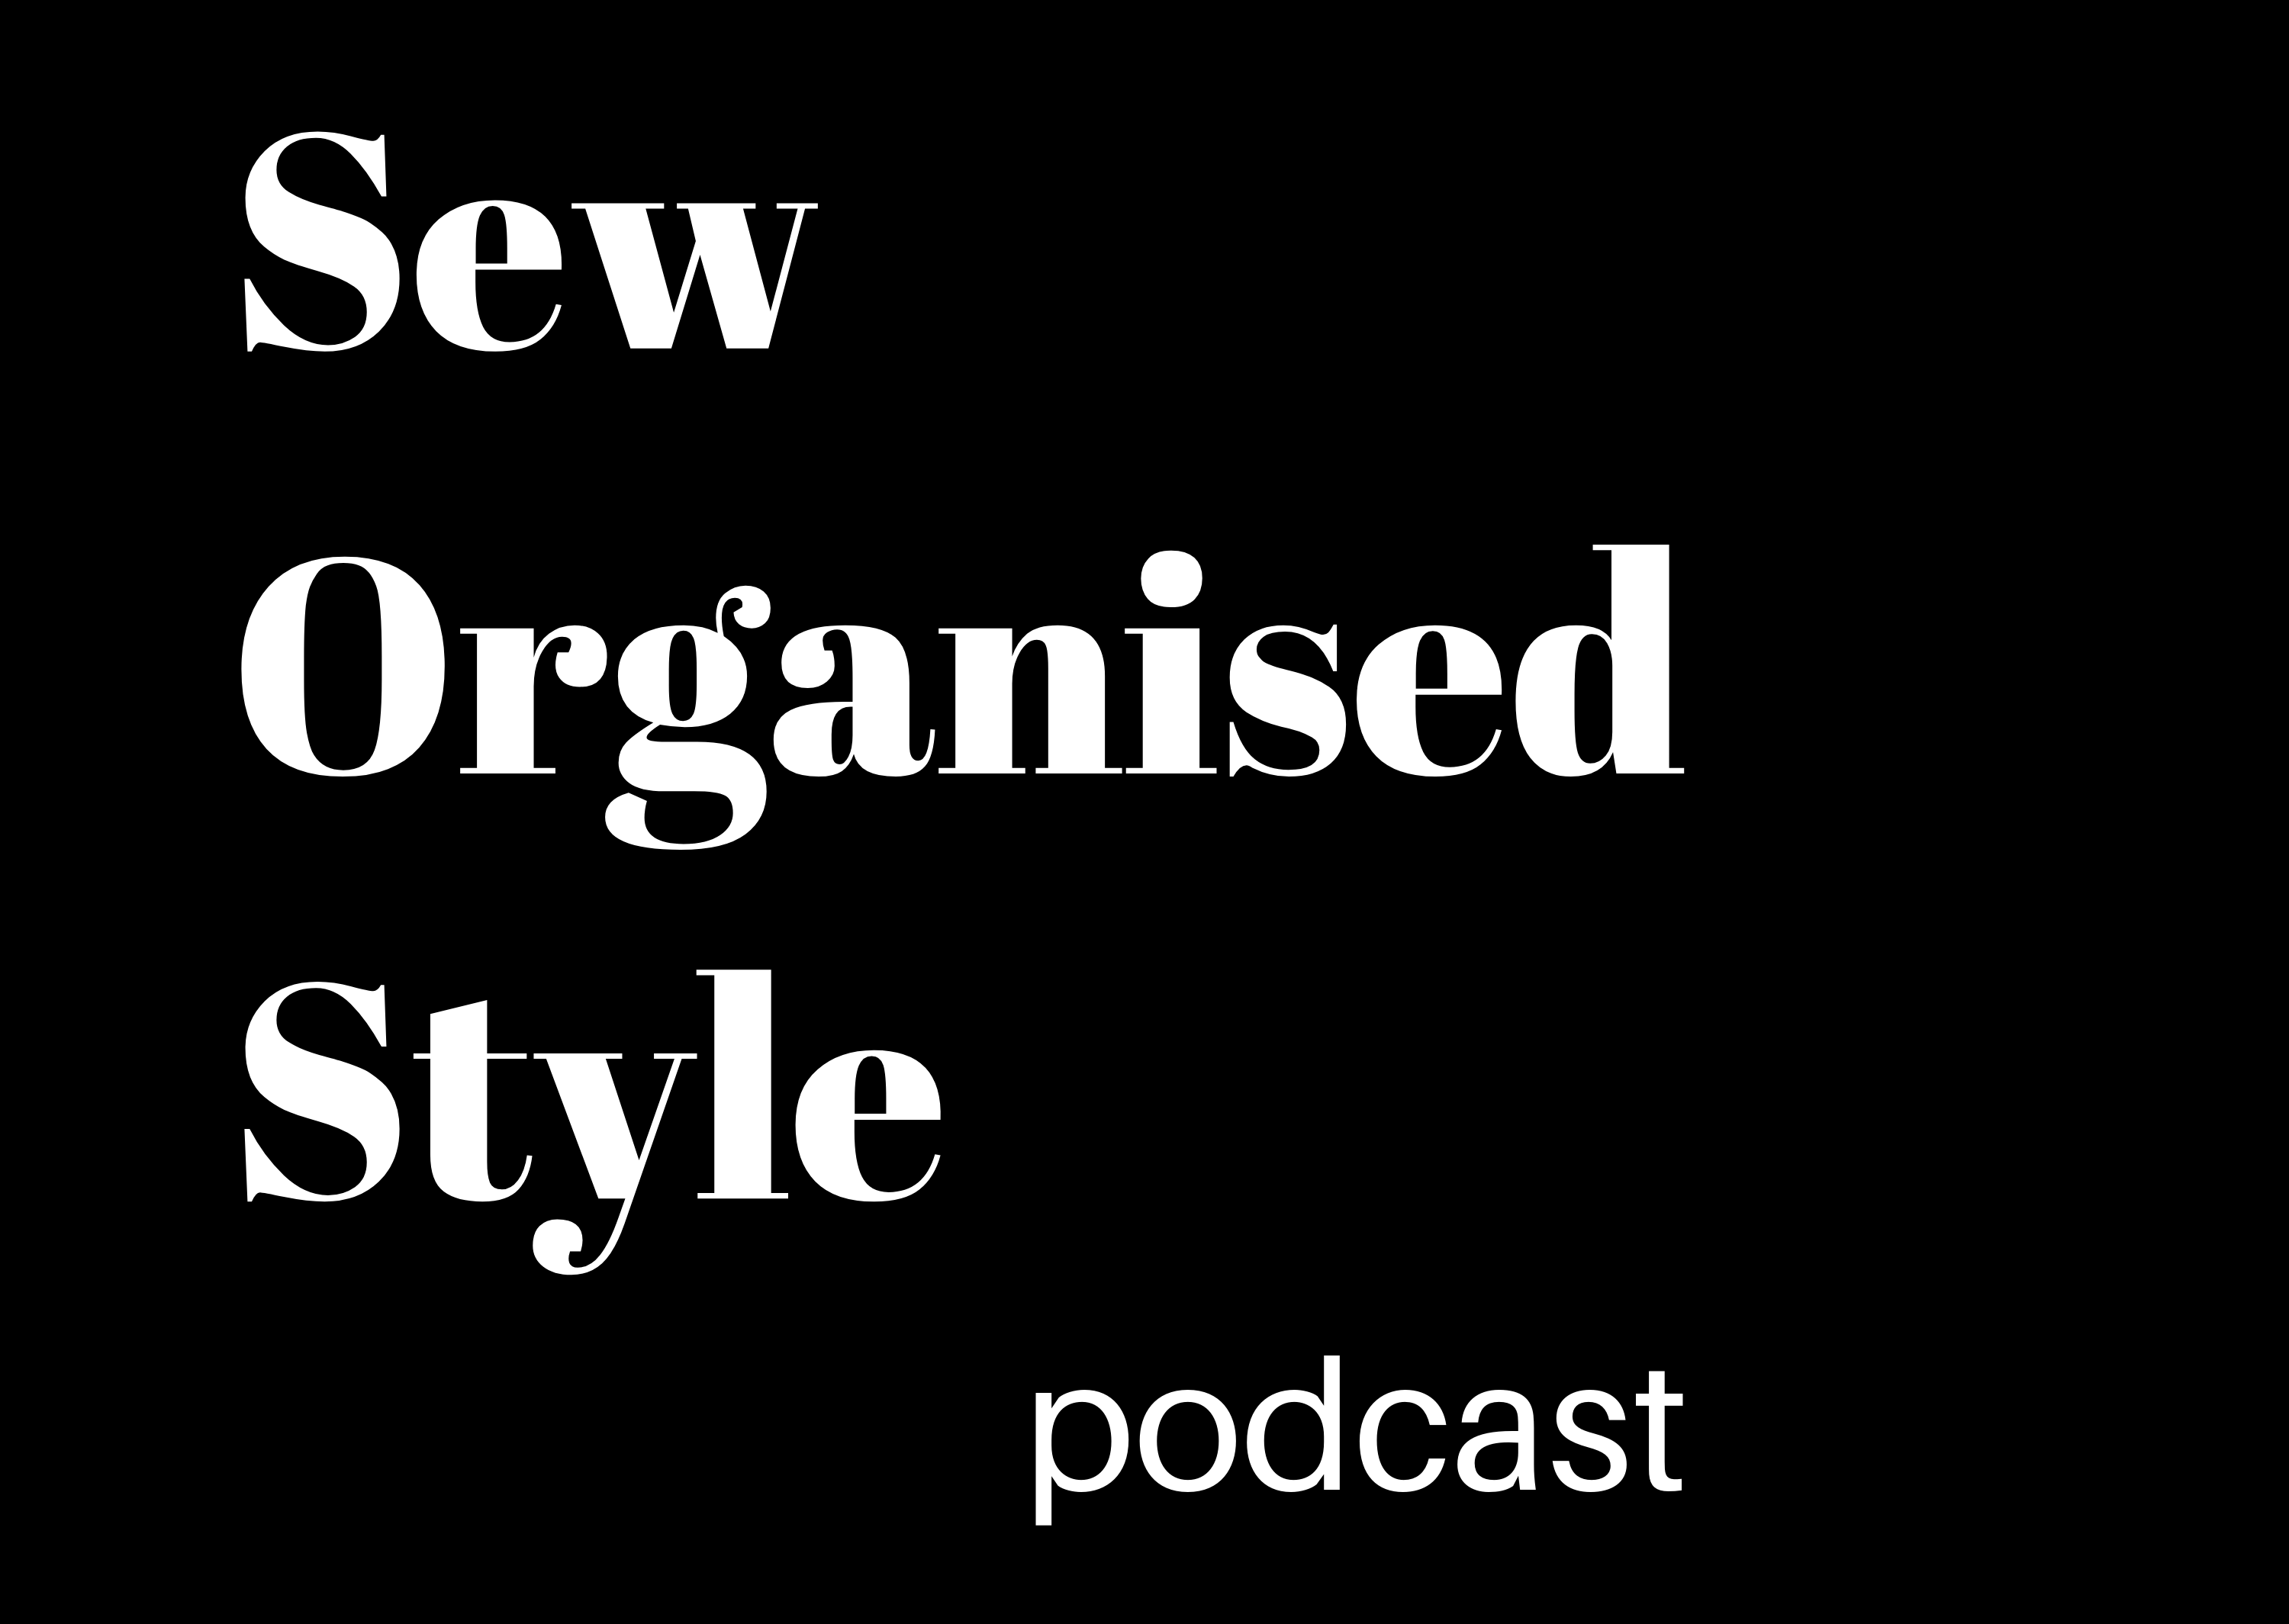 Sew organised style podcast